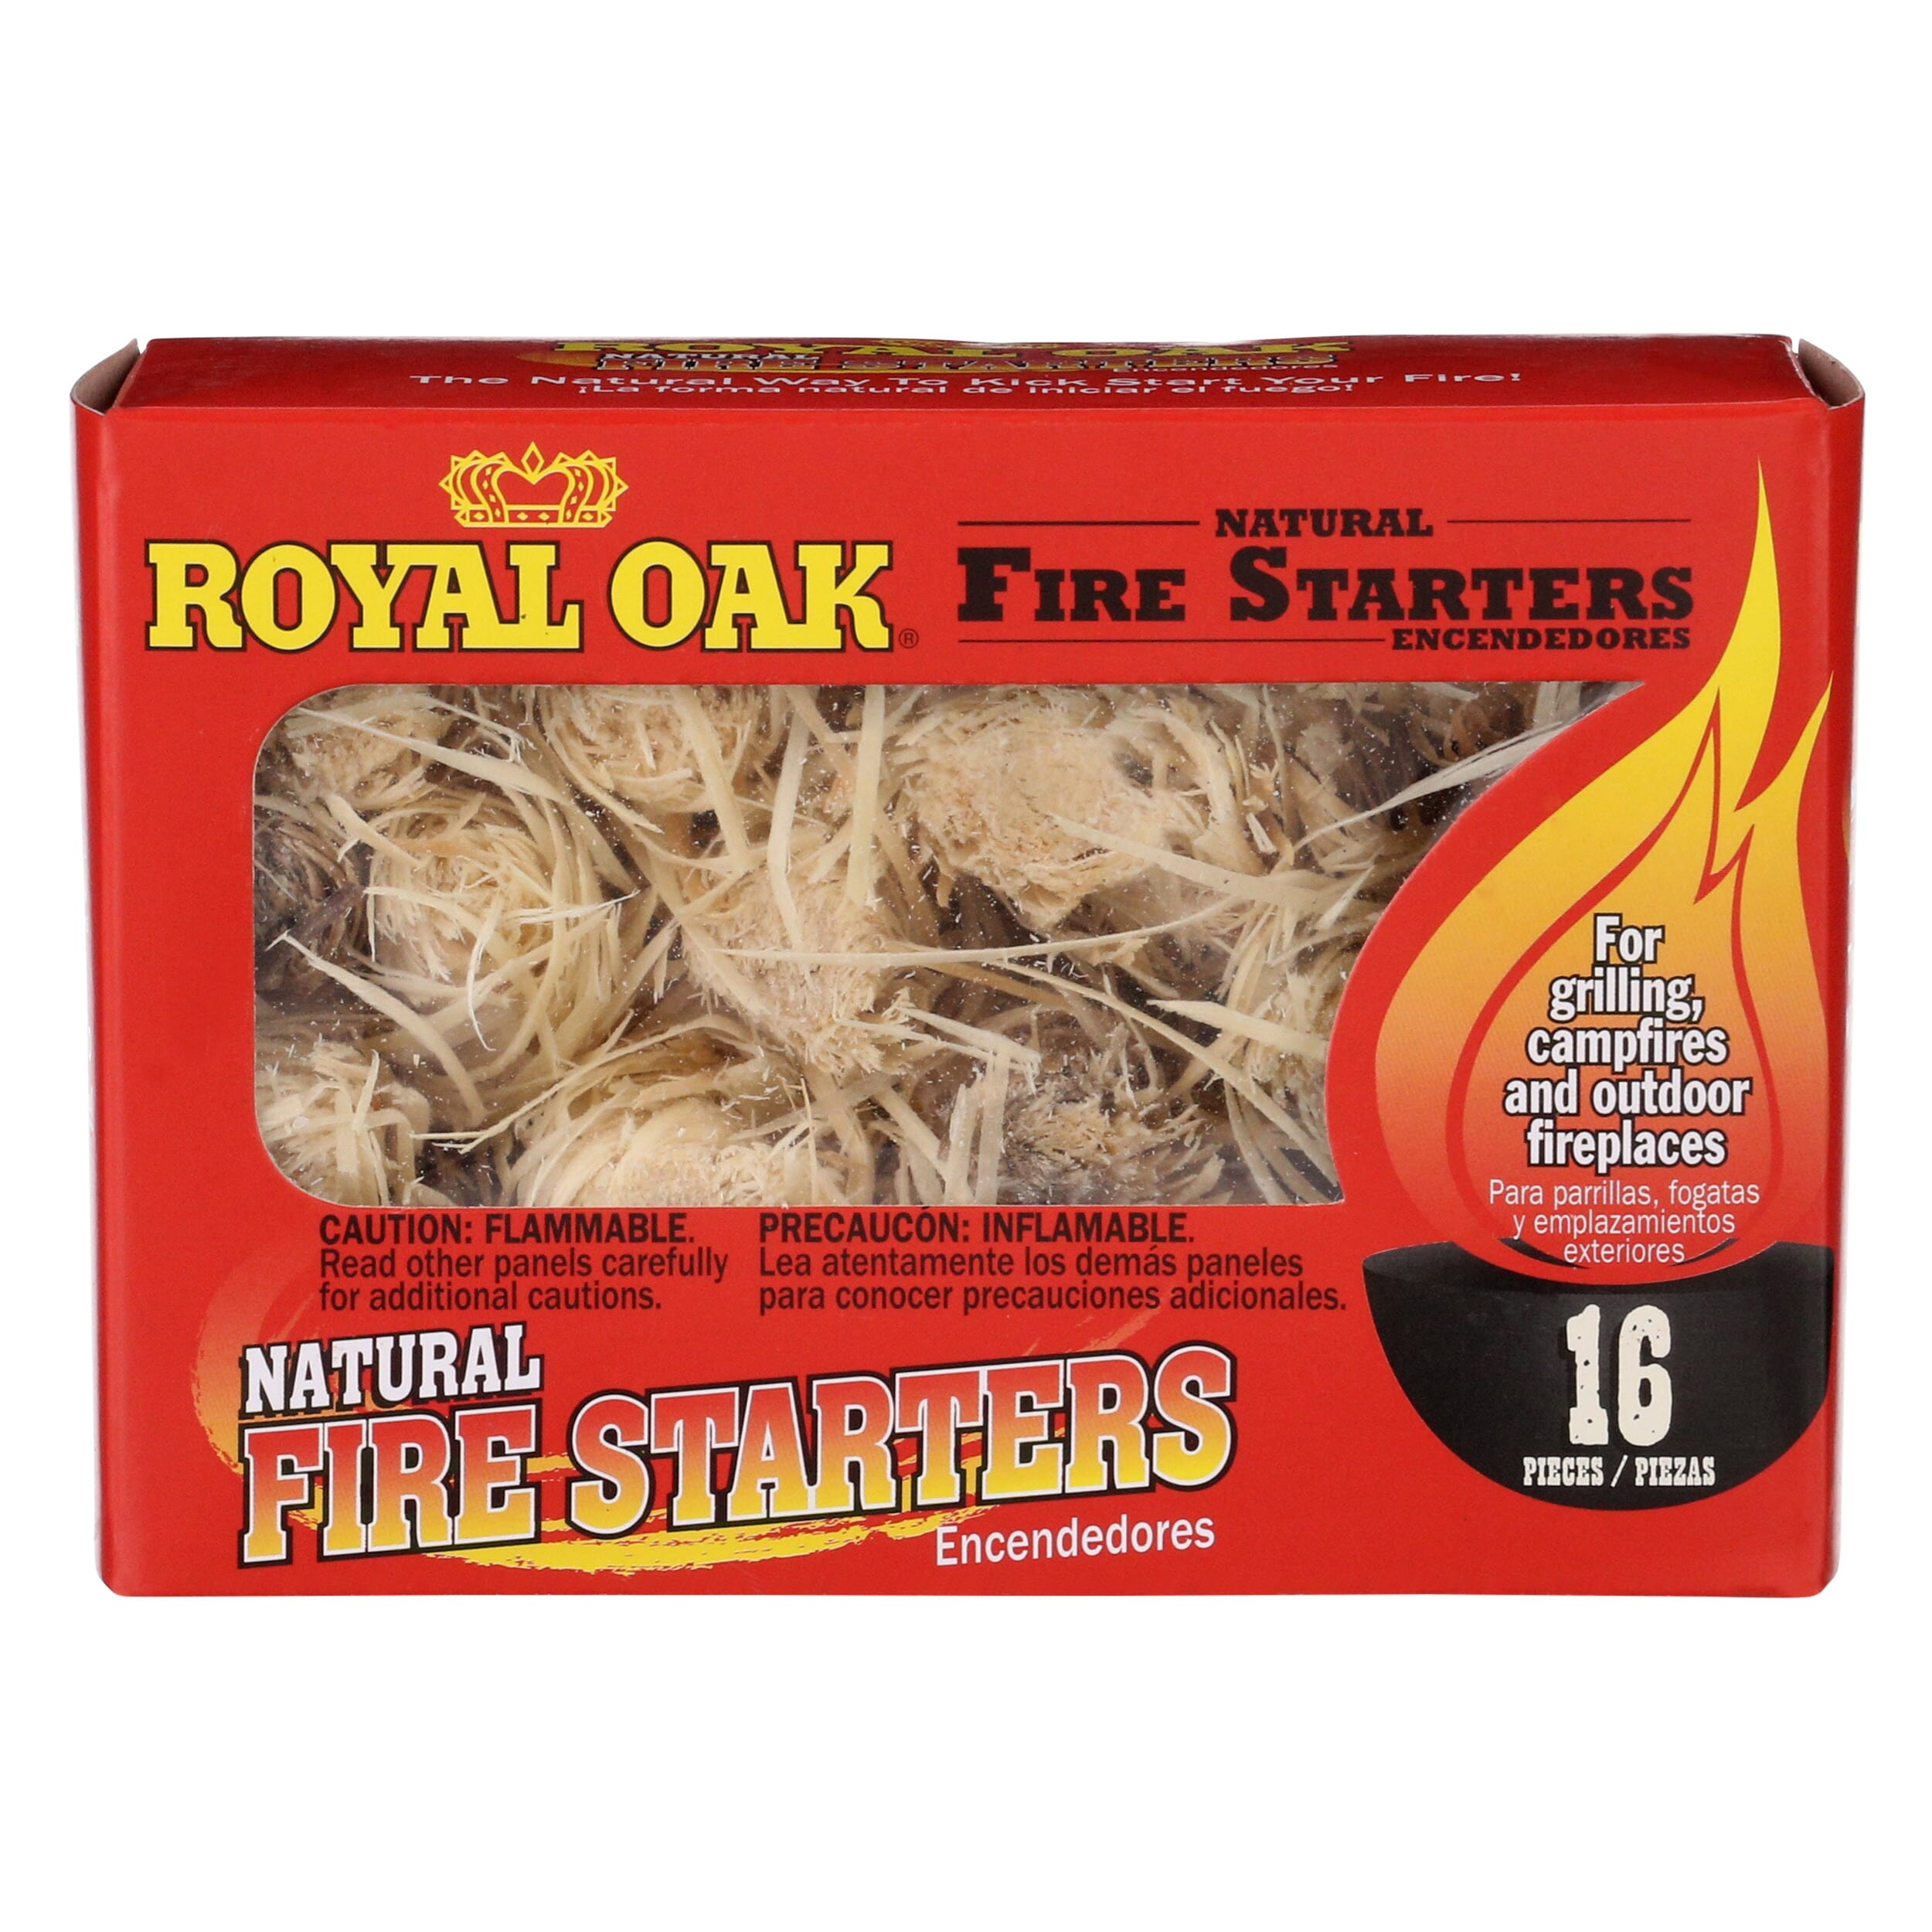 Diamond Strike A Fire (48-Count)-4878911025 - The Home Depot